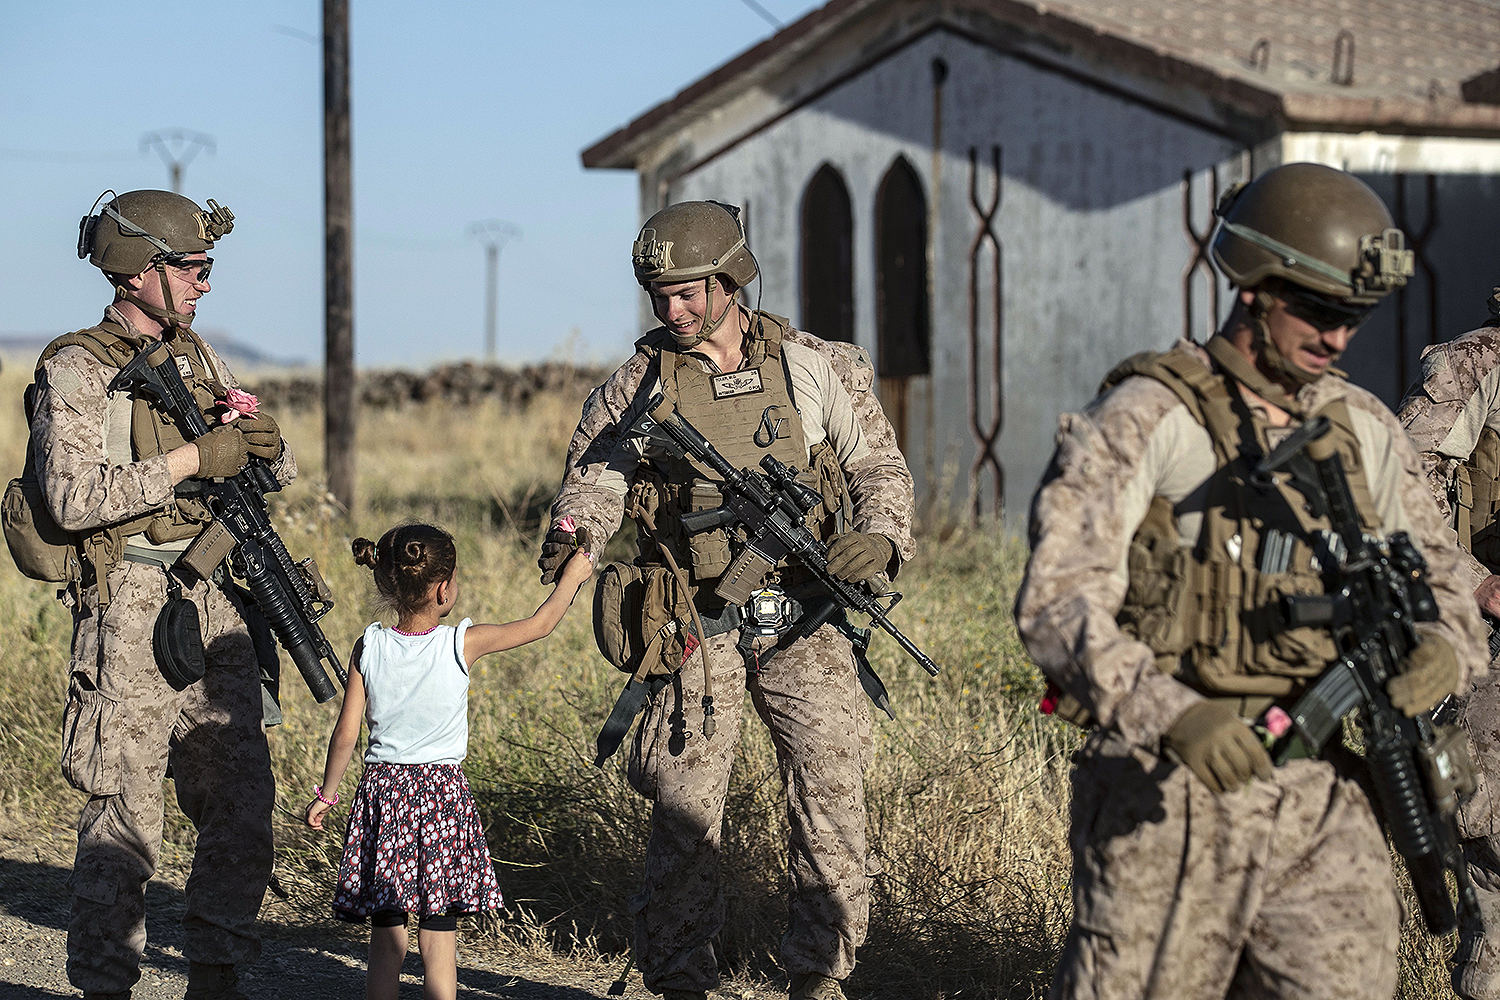 A Syrian girl gives flowers to U.S. soldiers as their convoy makes a stop in the northeastern Syrian town of al-Malikiyah (known to Kurds as Derik) during a patrol of Kurdish towns near the border with Turkey on June 7. DELIL SOULEIMAN/AFP via Getty Images